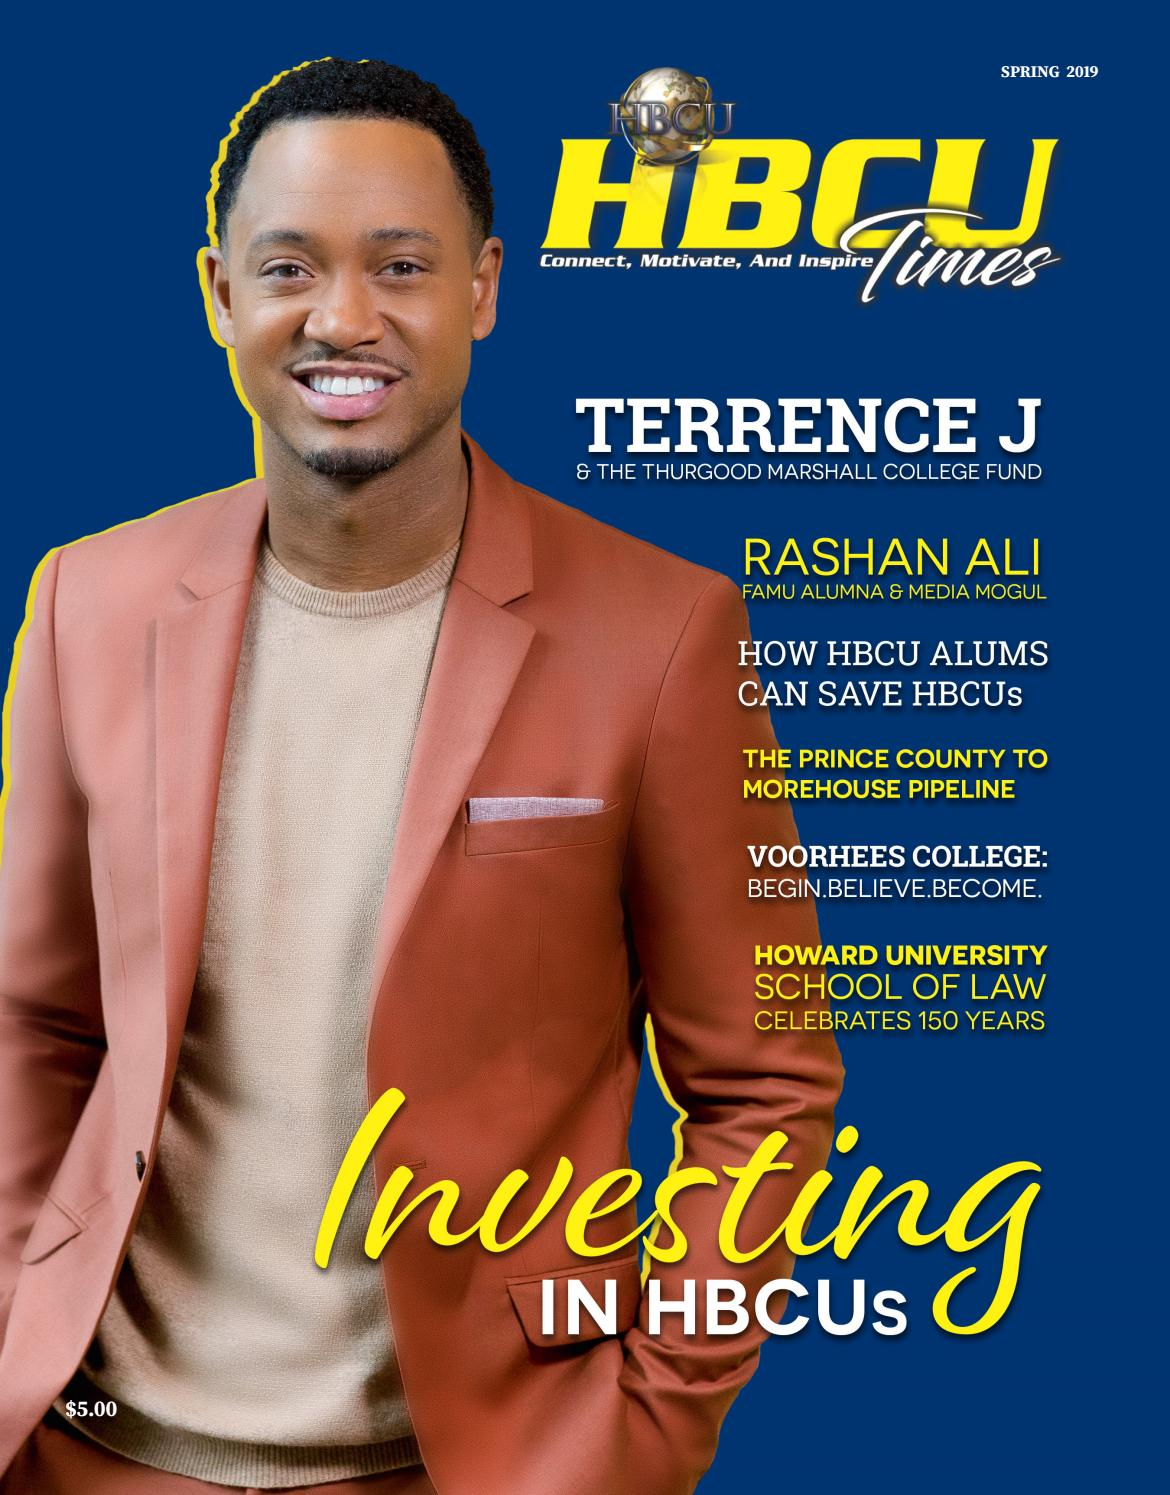 a2161a60 HBCU Times Magazine Spring 2019 Issue by HBCU Times - issuu